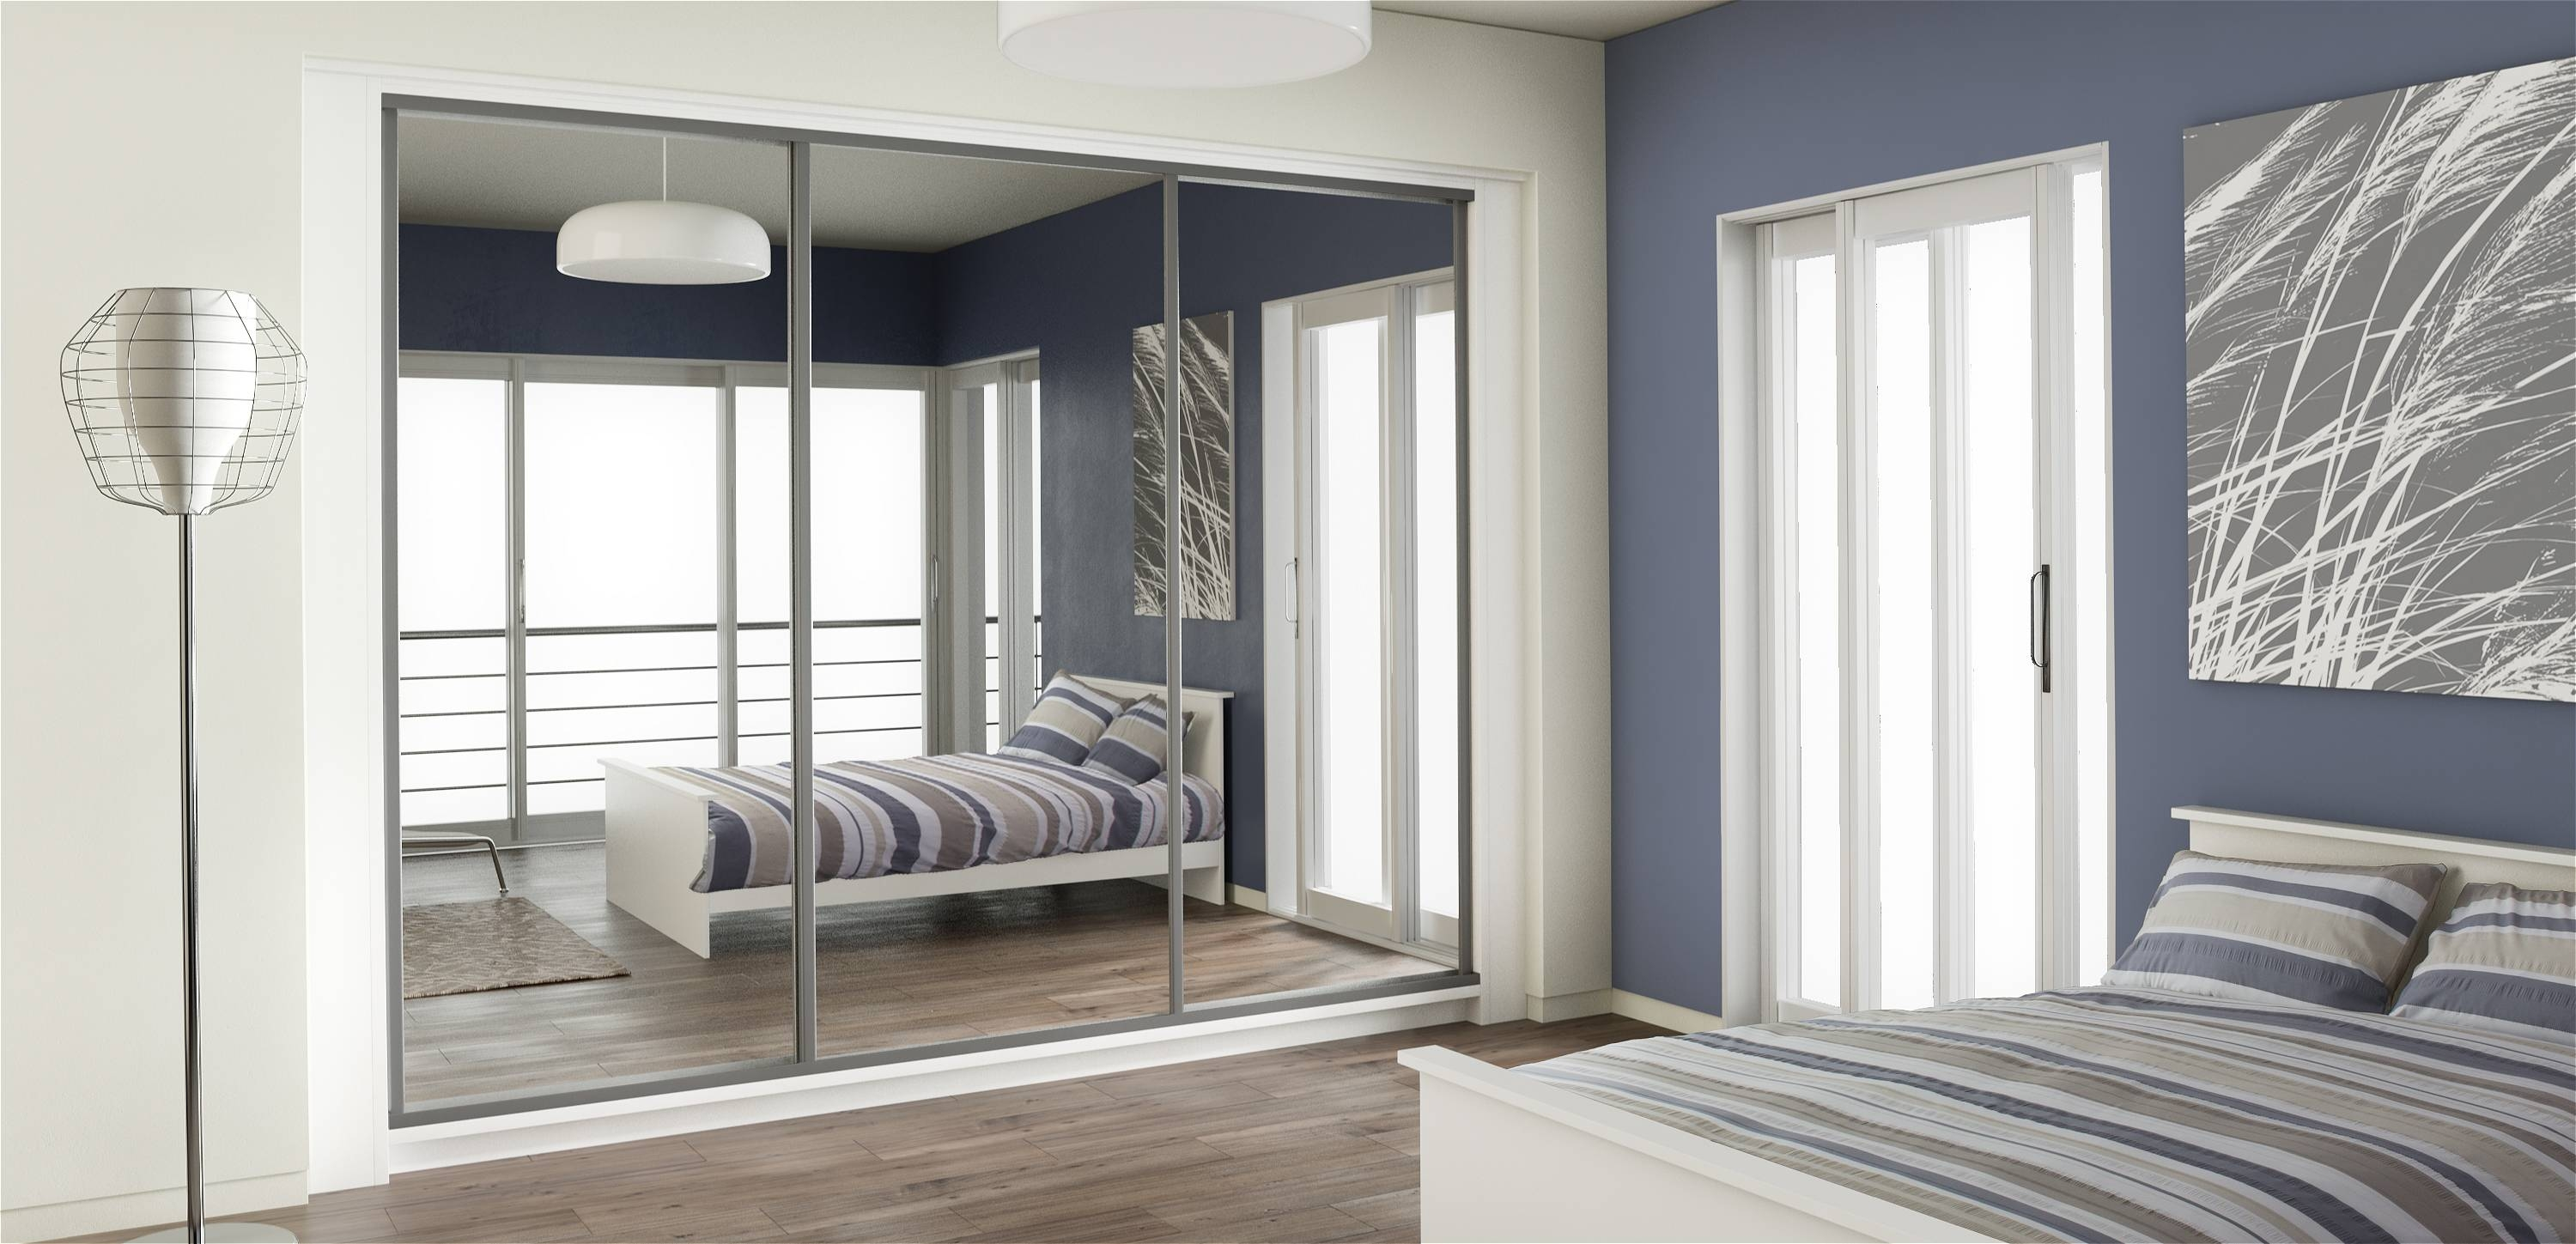 Mirror Design Ideas: Robes Brand Bedroom Mirrored Wardrobes Lens intended for Full Mirrored Wardrobes (Image 6 of 15)